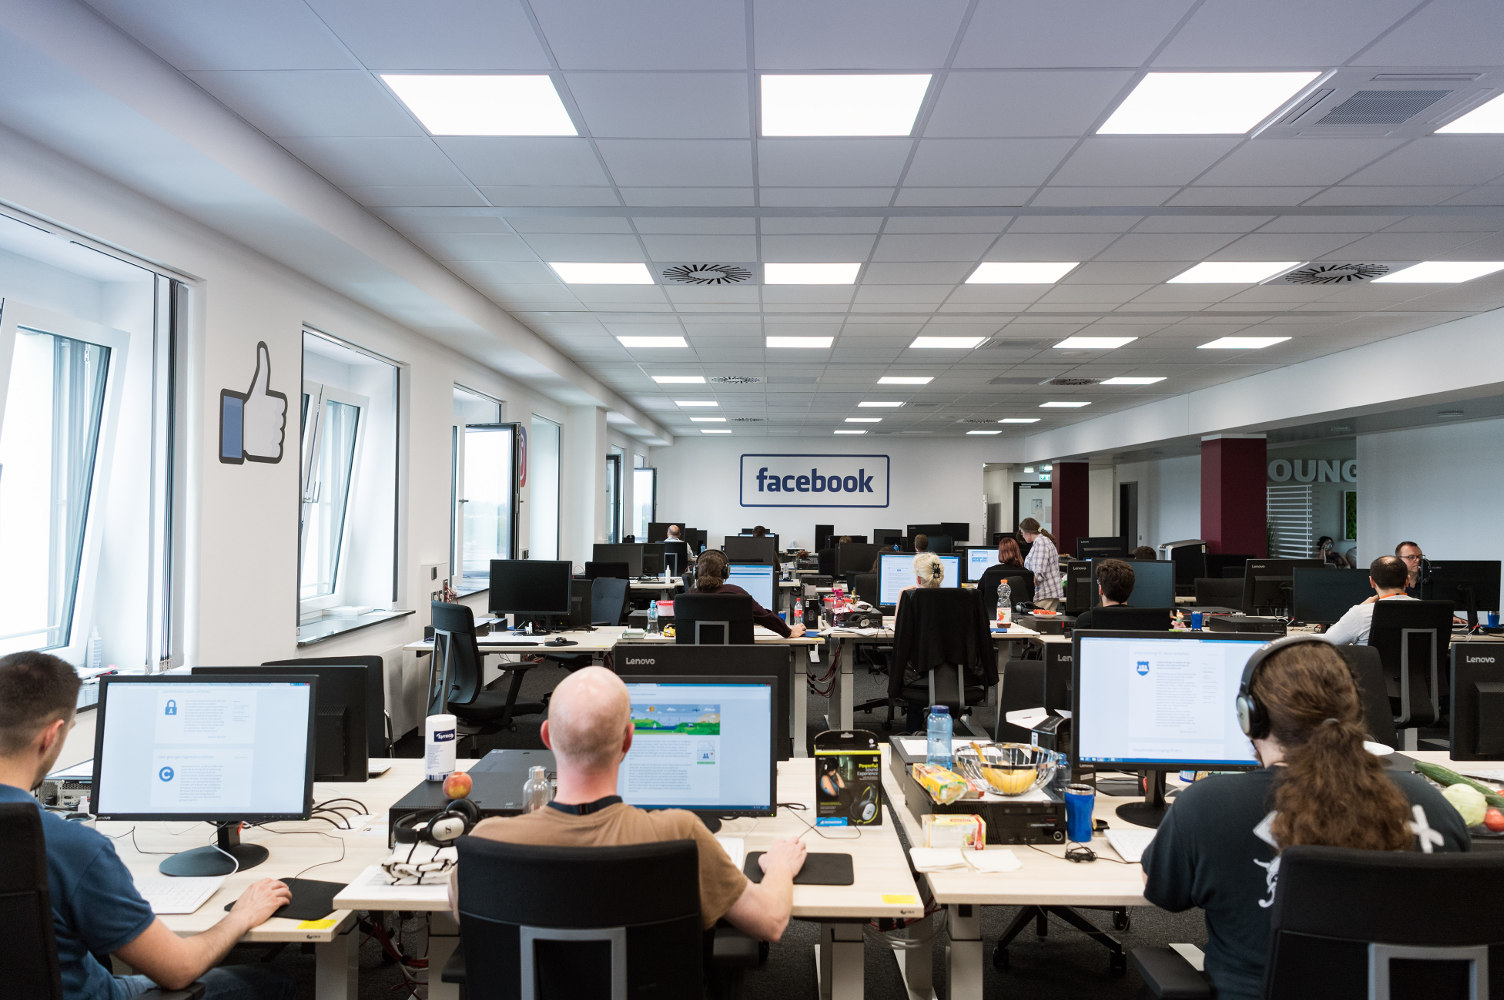 photo of inside of Facebook's Moderation Center in Berlin from https://www.thelocal.de/20170711/the-first-beheading-video-made-me-weep-a-day-in-the-life-of-facebook-moderators